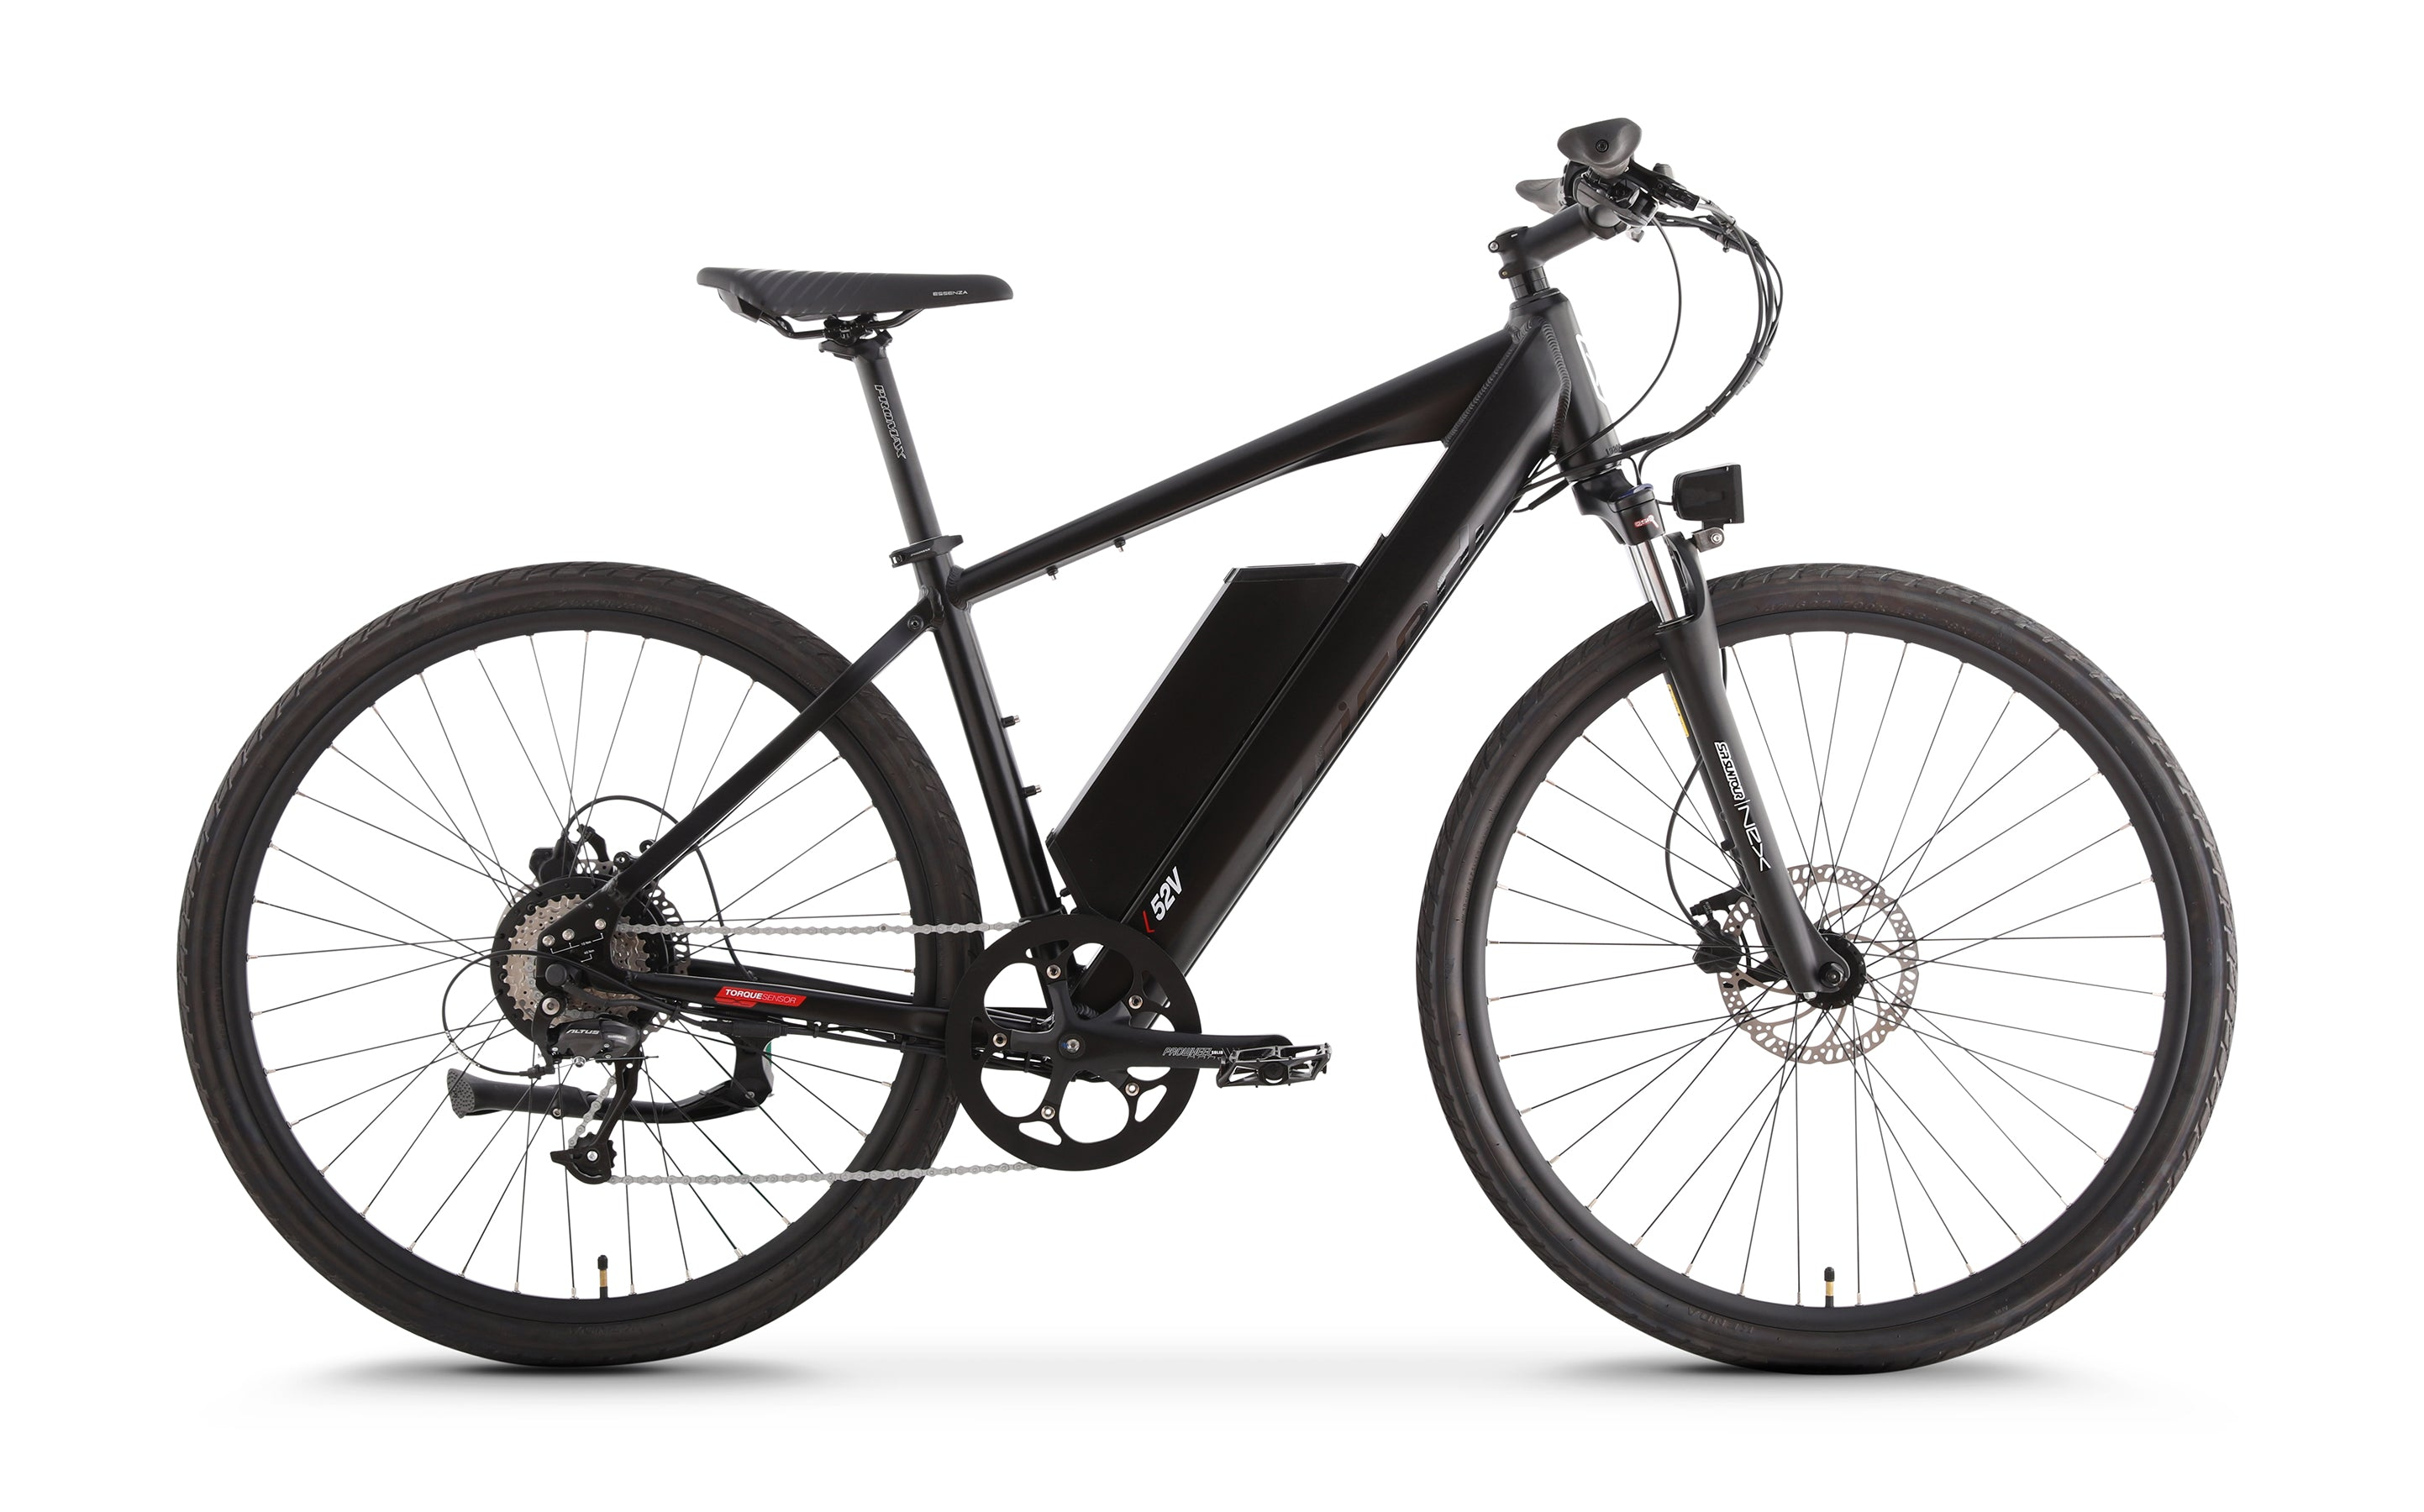 Black power assisted bike CrossCurrent S2